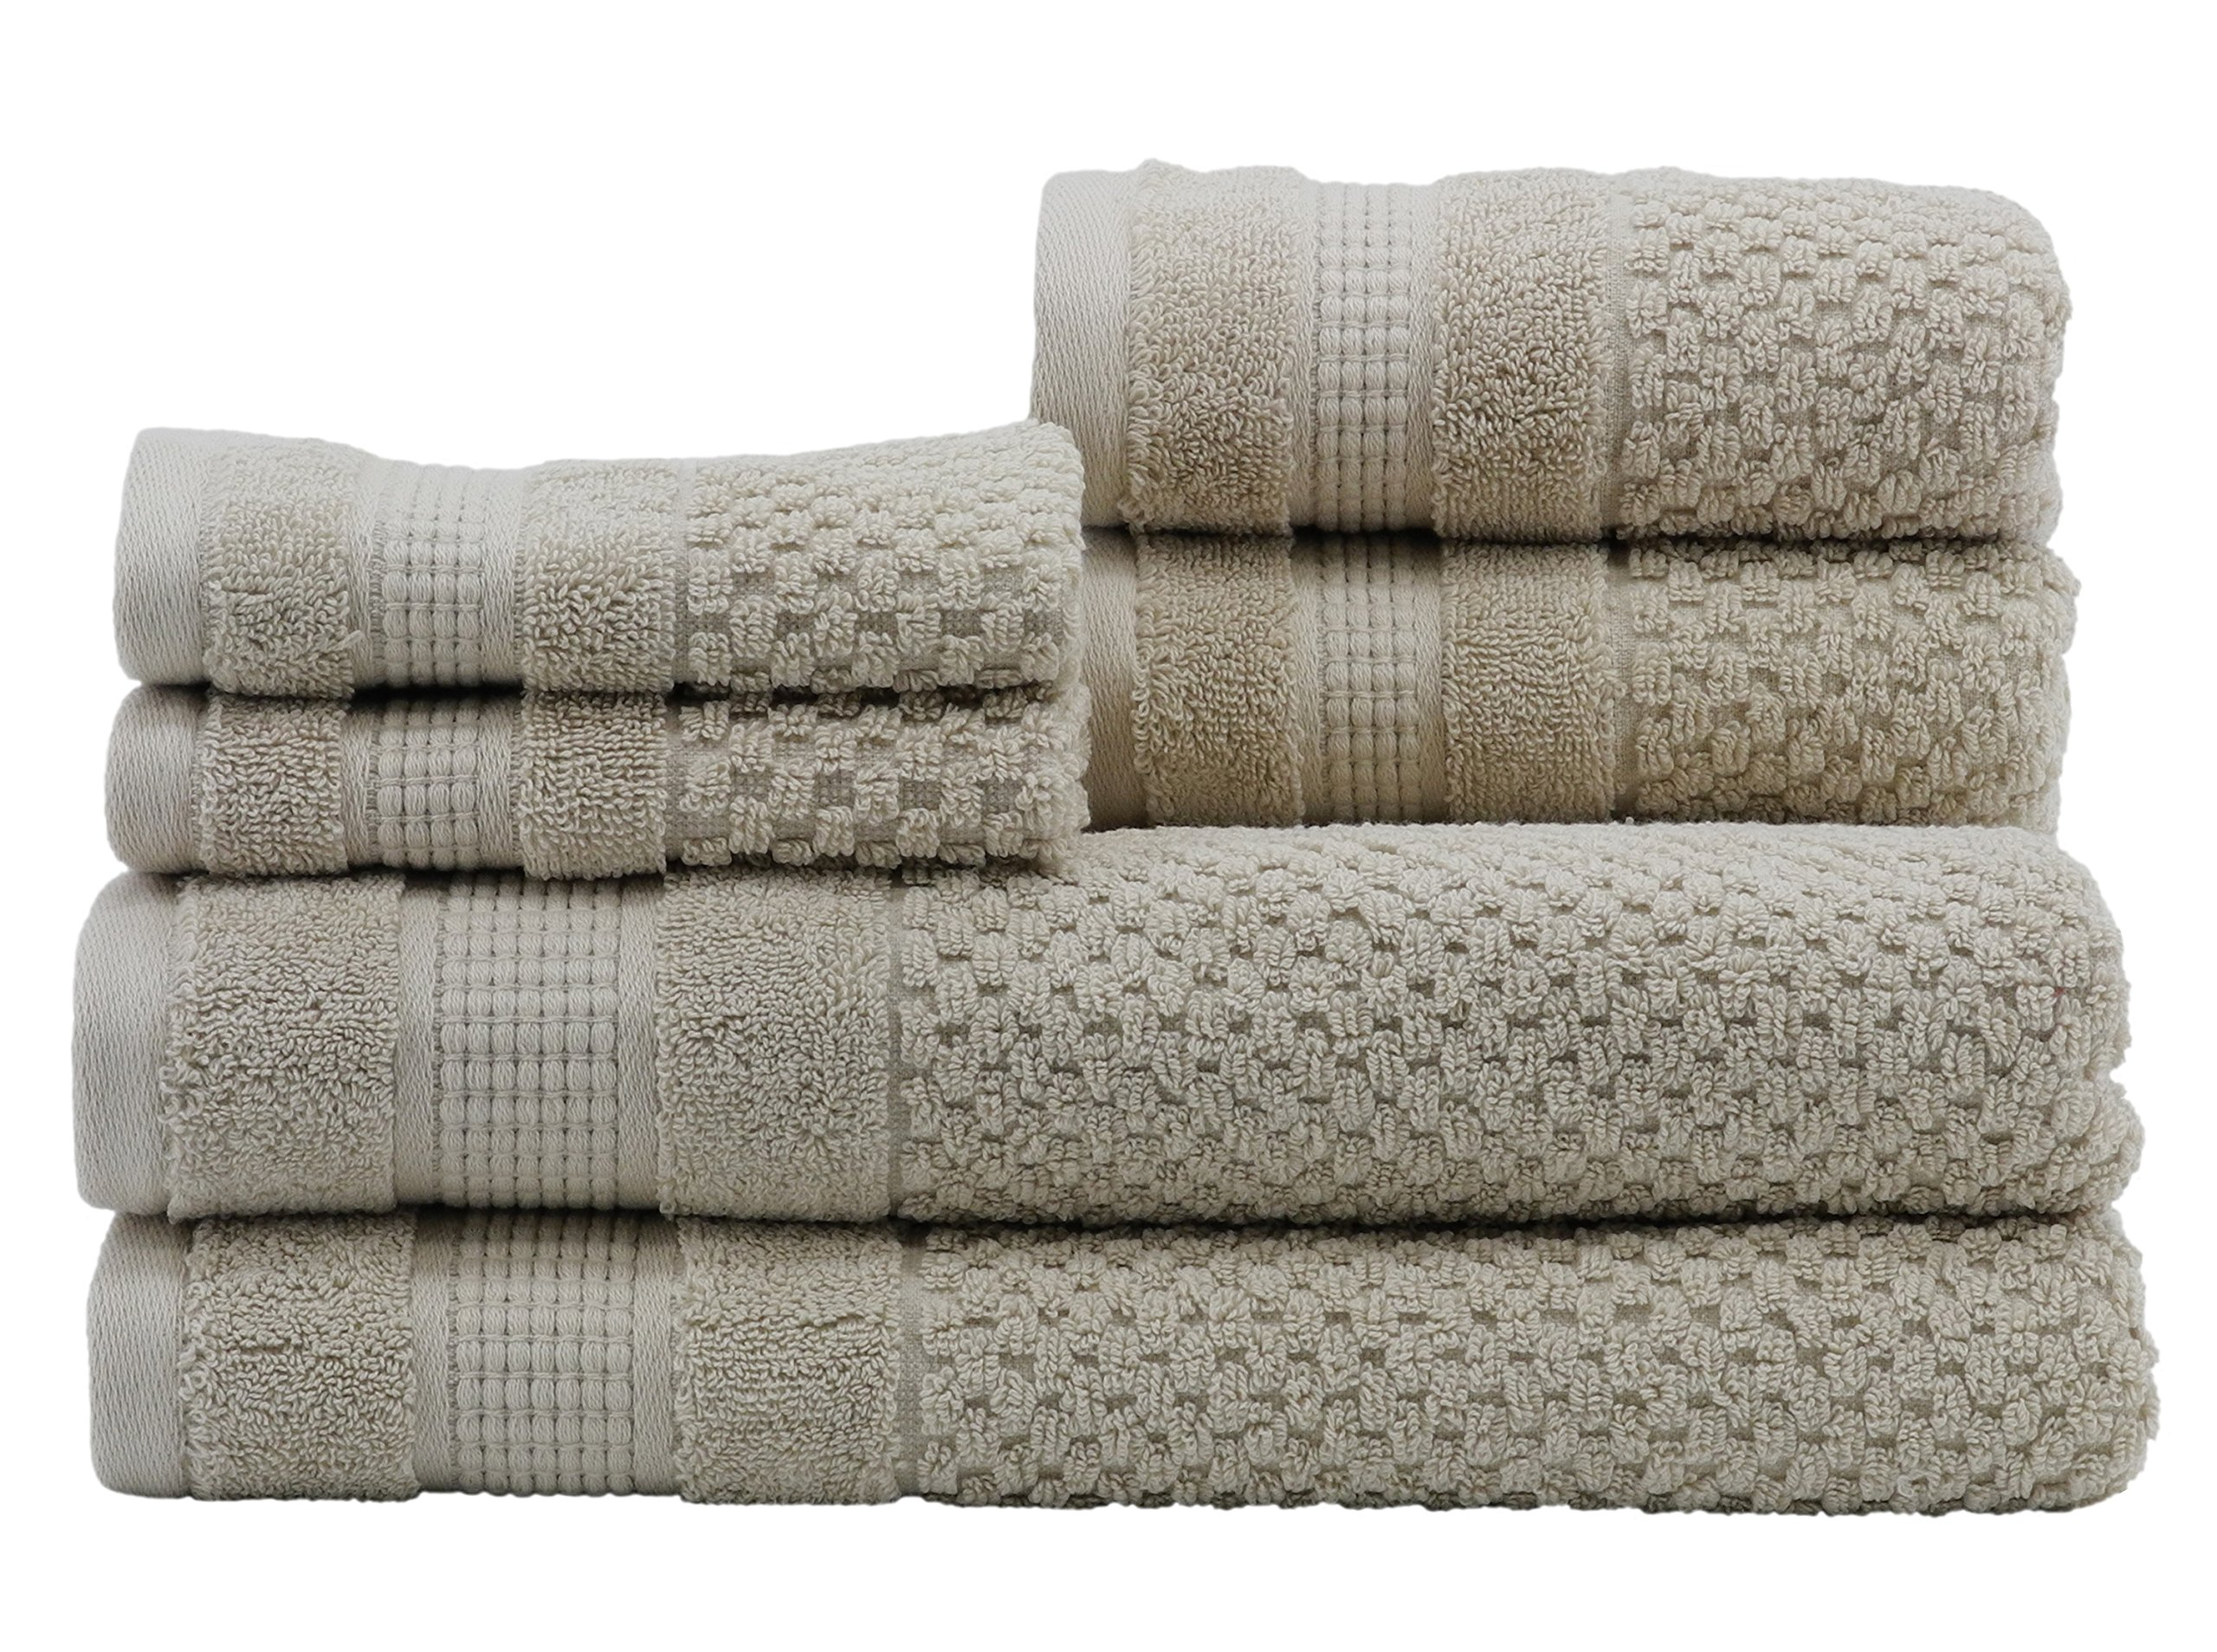 Caro Home Pebble 6 Piece Bath Towel Set, Large, Oat